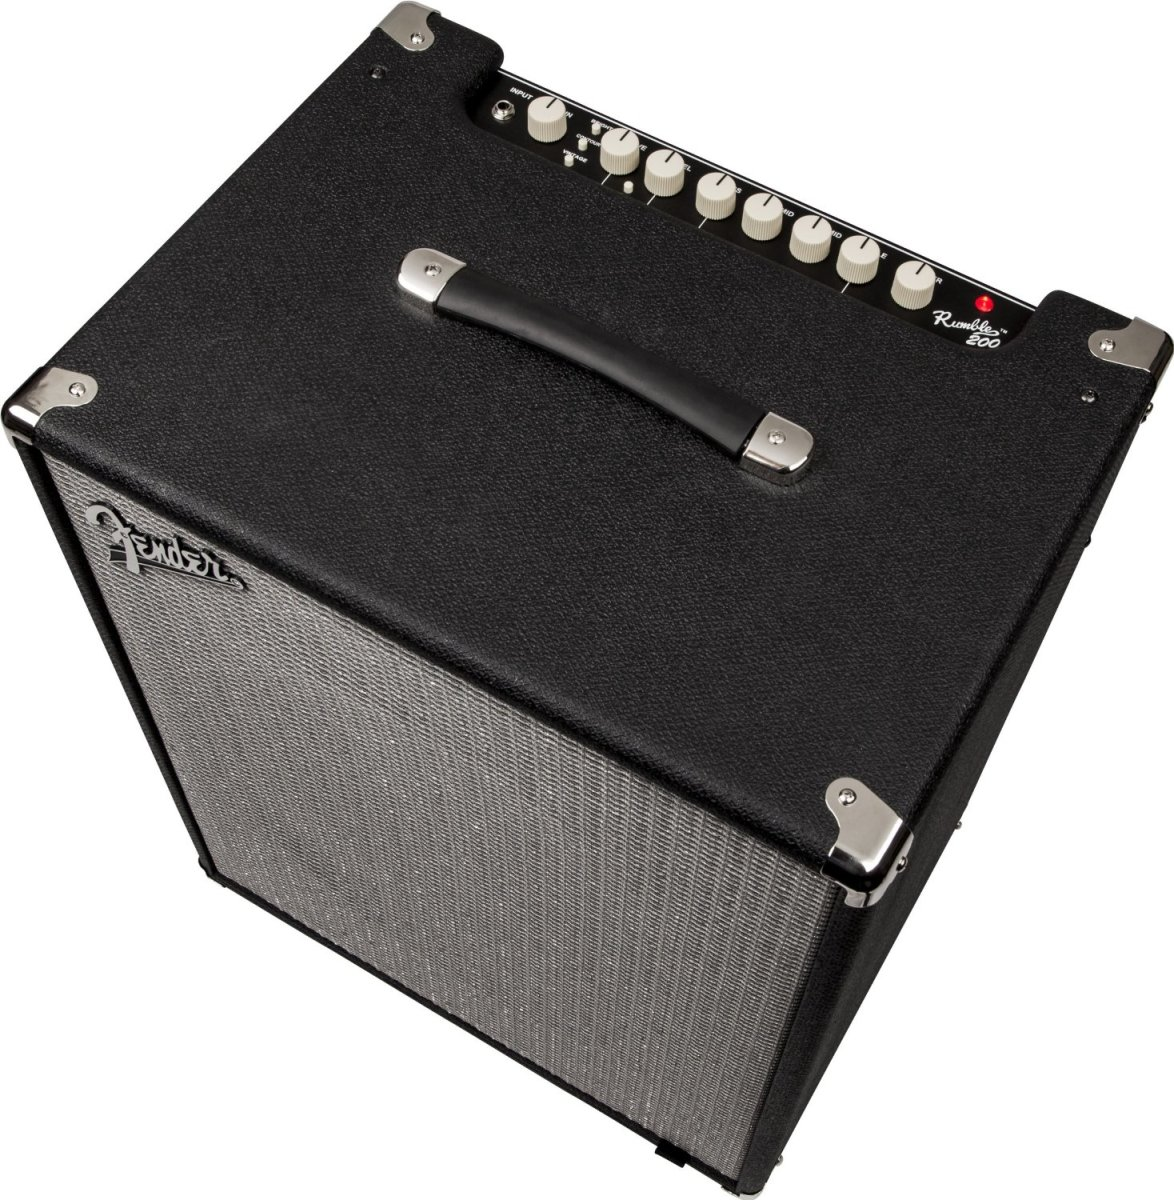 The Fender Rumble 200 is one of the top bass combo amps under $500